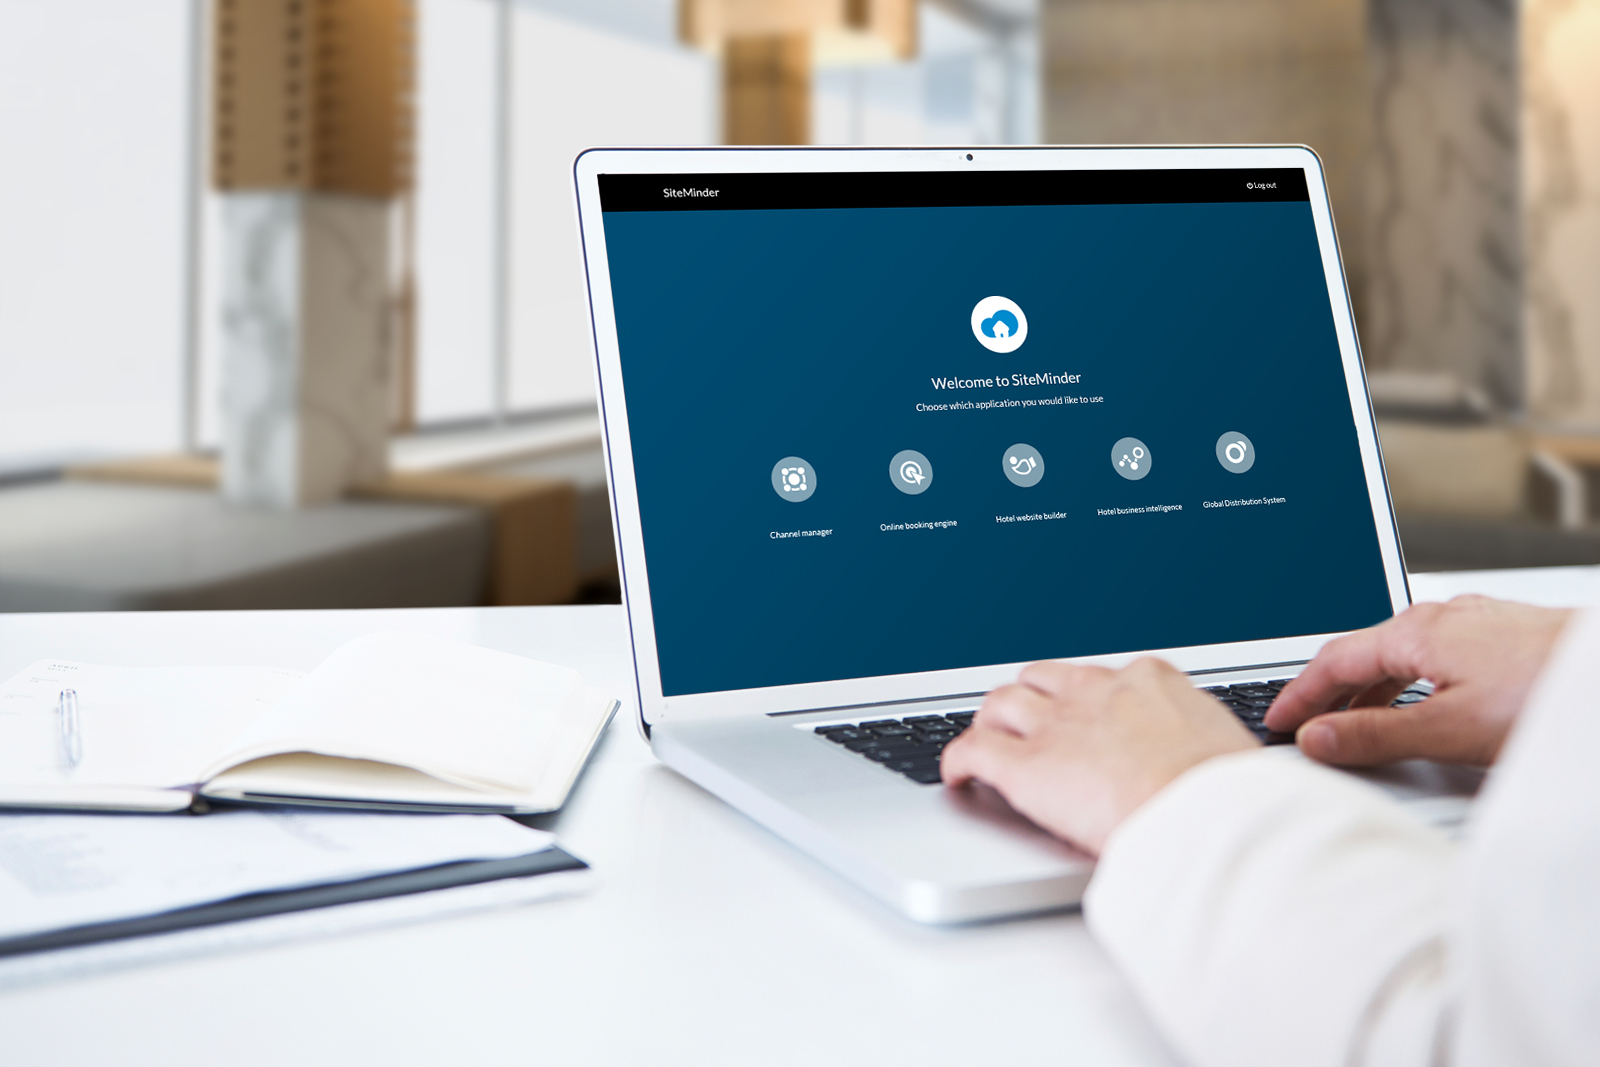 SiteMinder Enhances Experience, Security for 30,000 Hotels